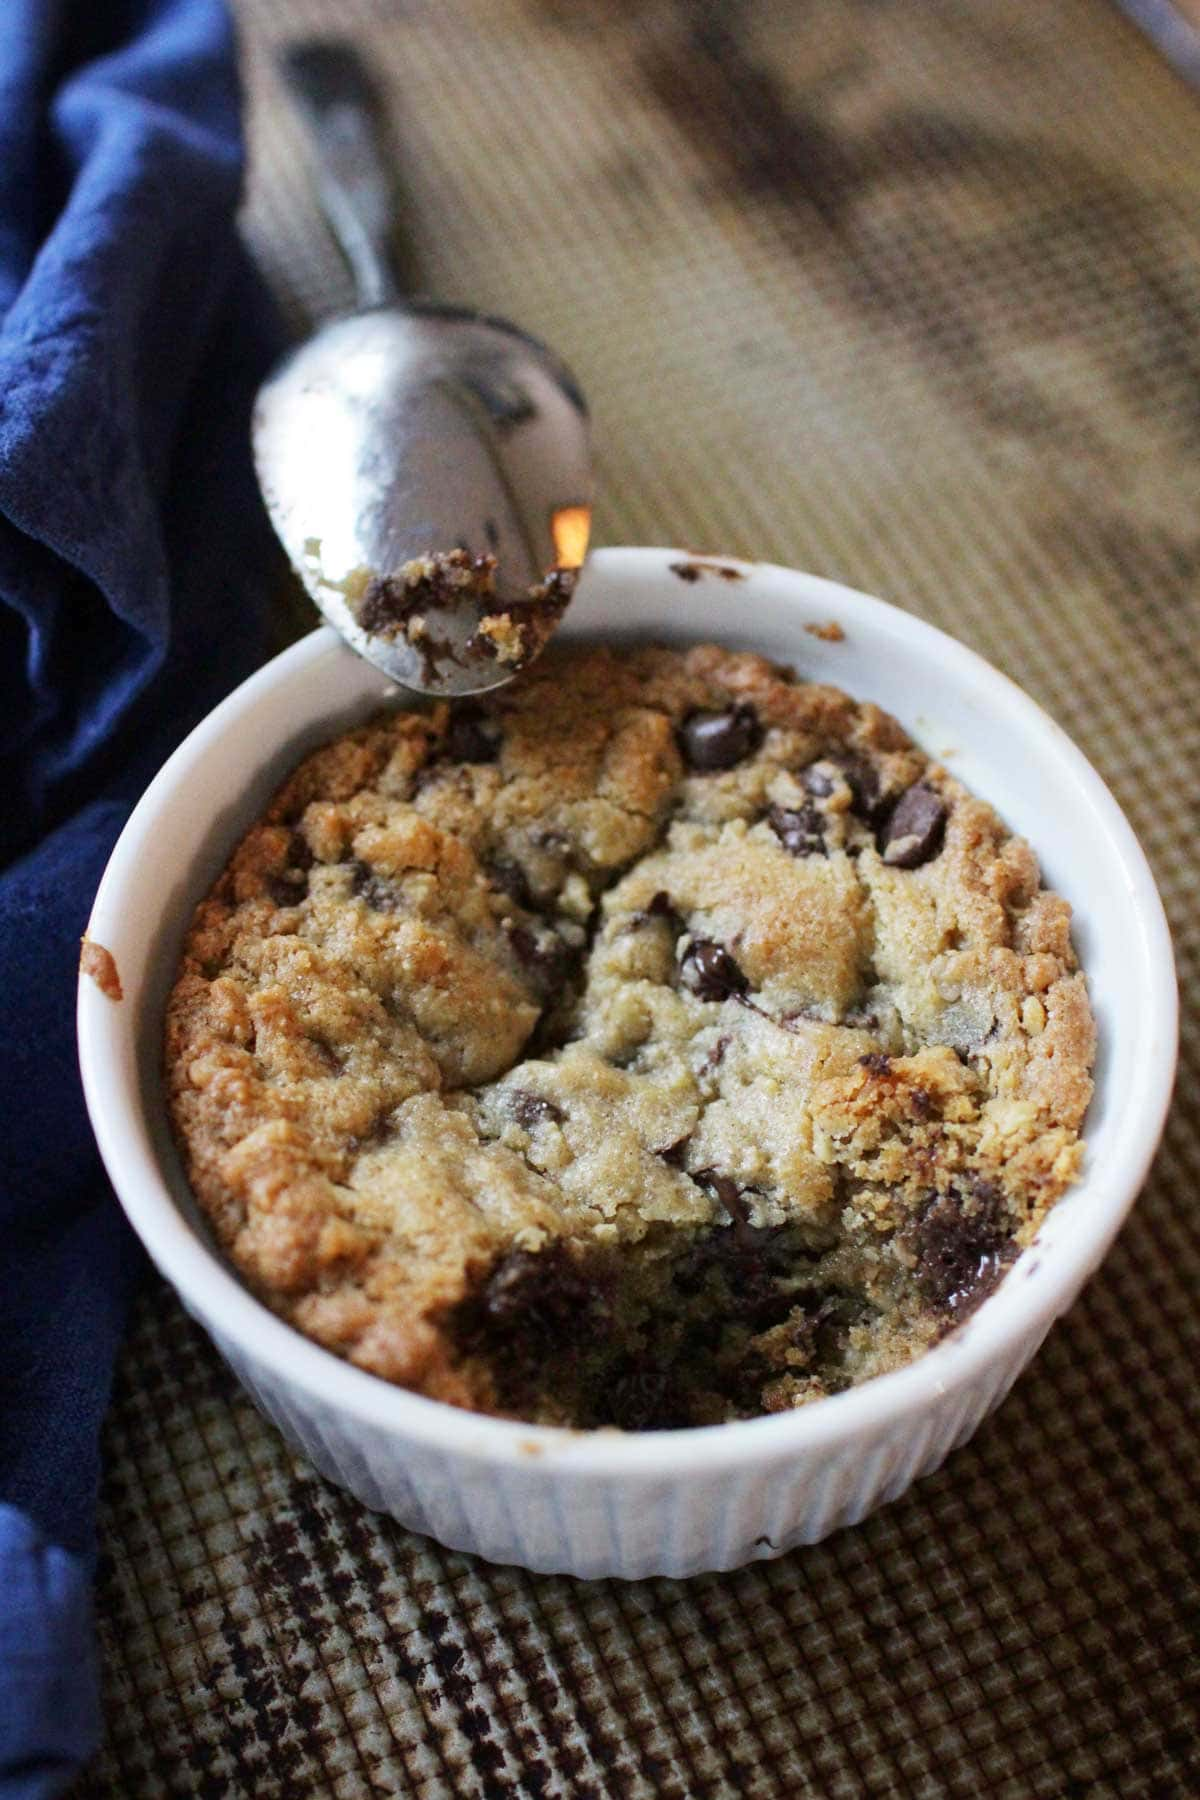 A spoon resting on the edge of a ramekin filled with a deep dish cookie made with chocolate chips